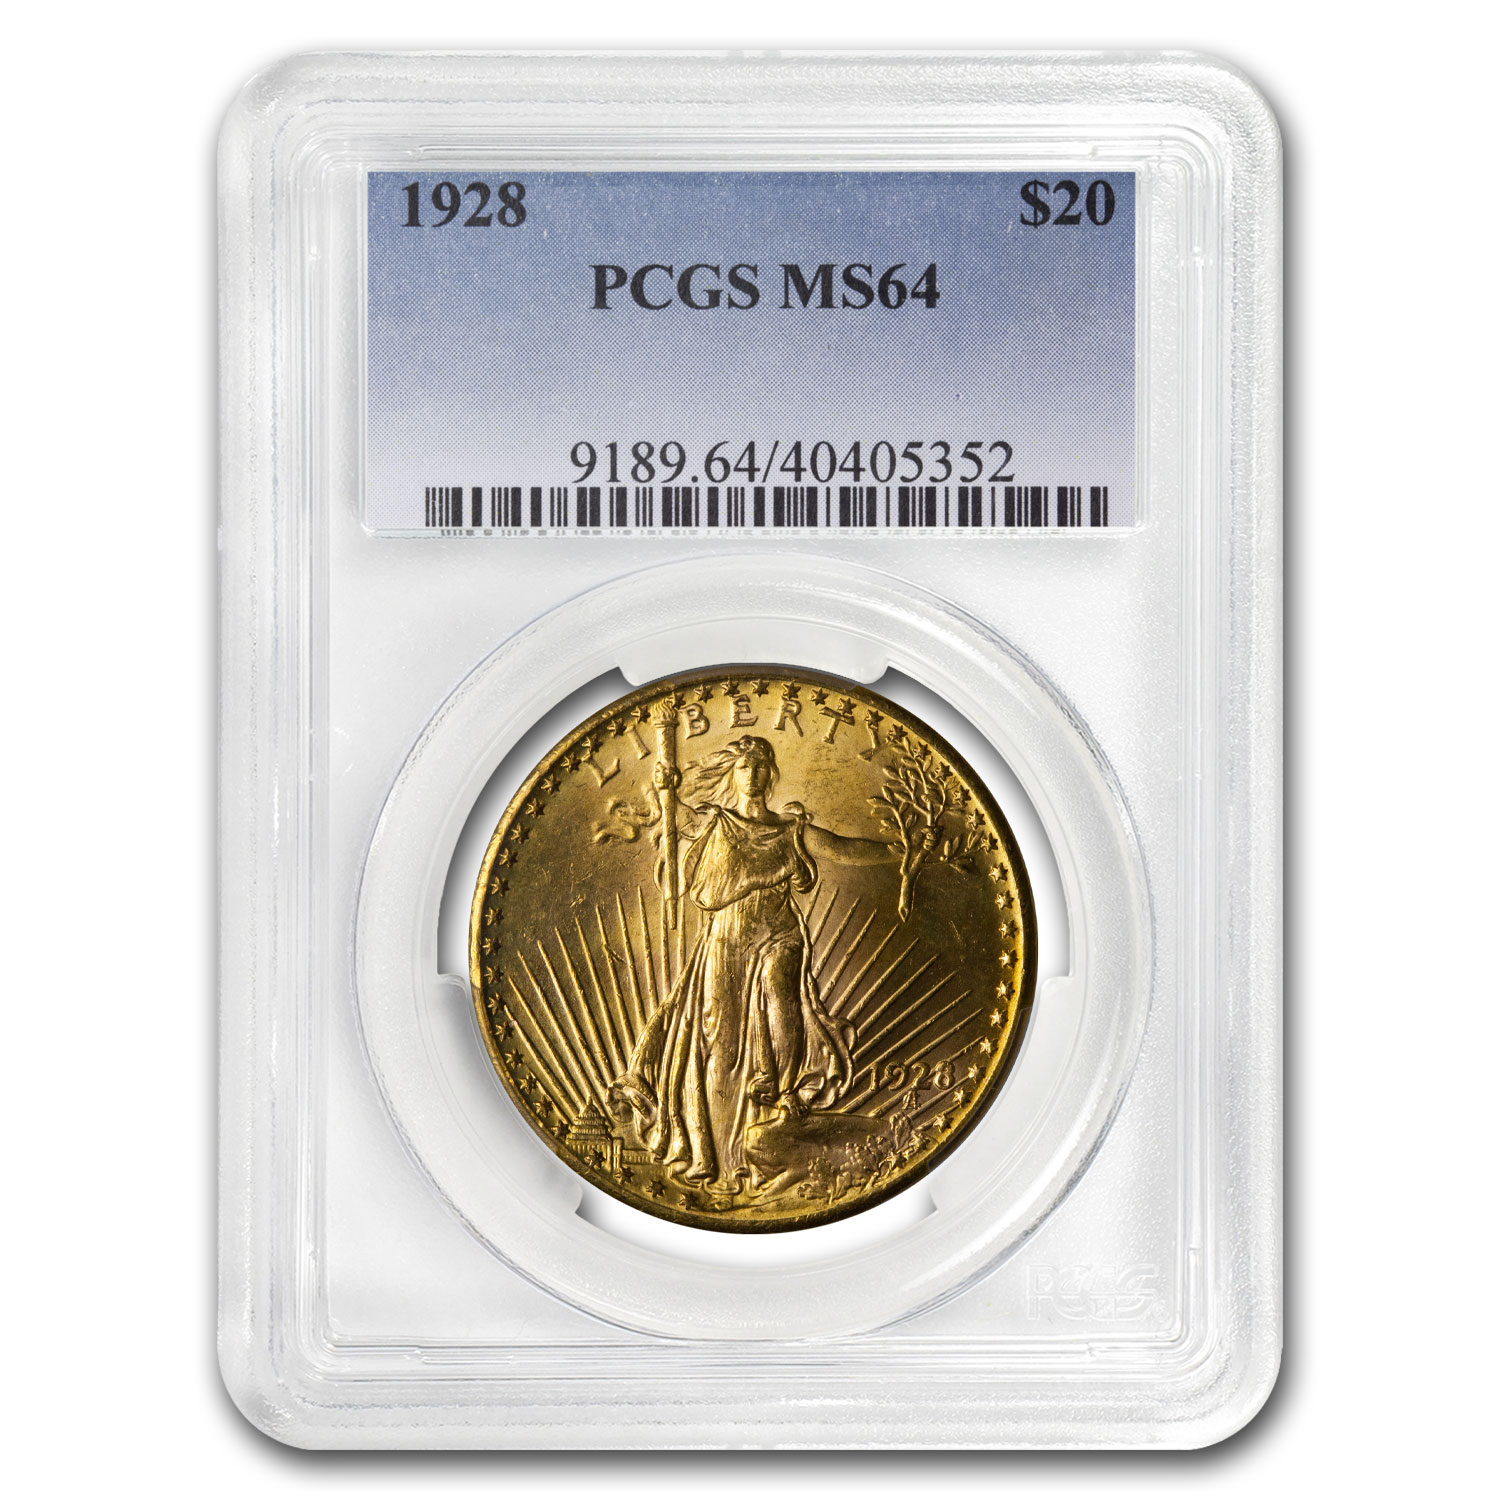 1928 $20 St. Gaudens Gold Double Eagle - MS-64 PCGS